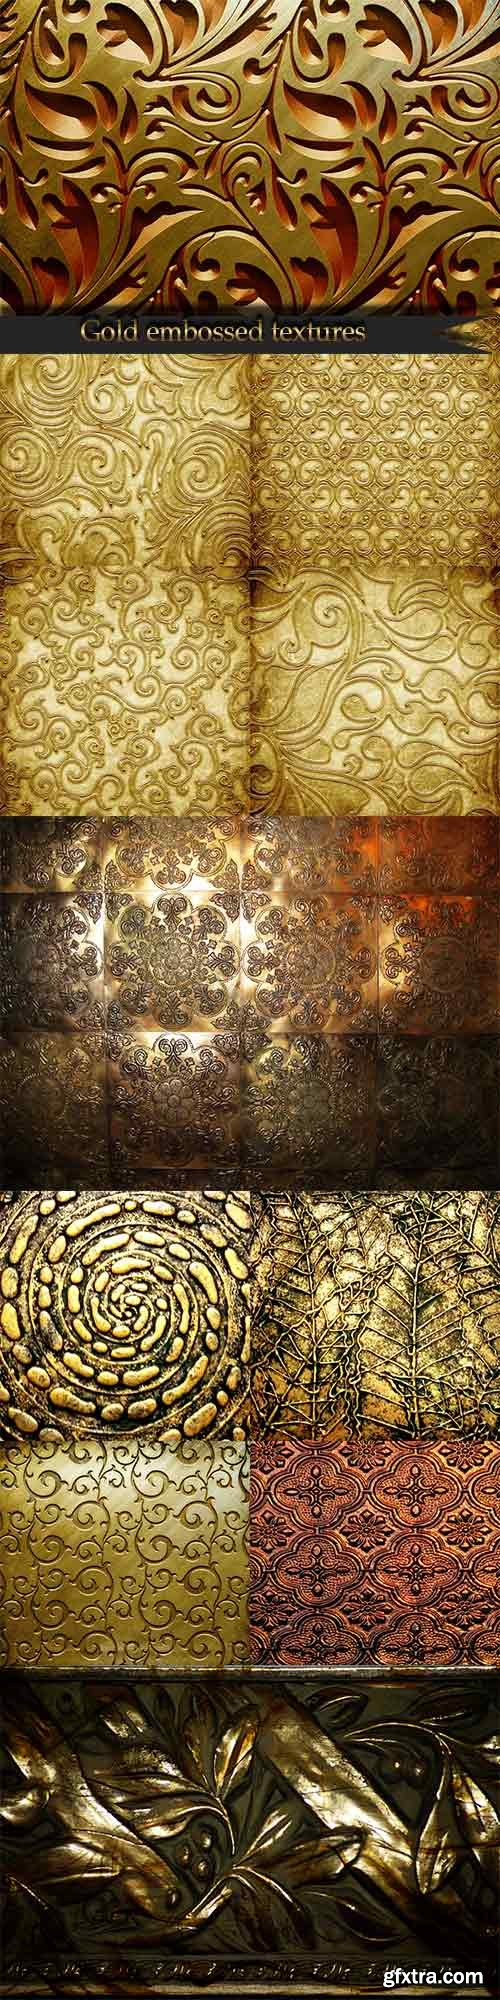 Stunning gold embossed textures